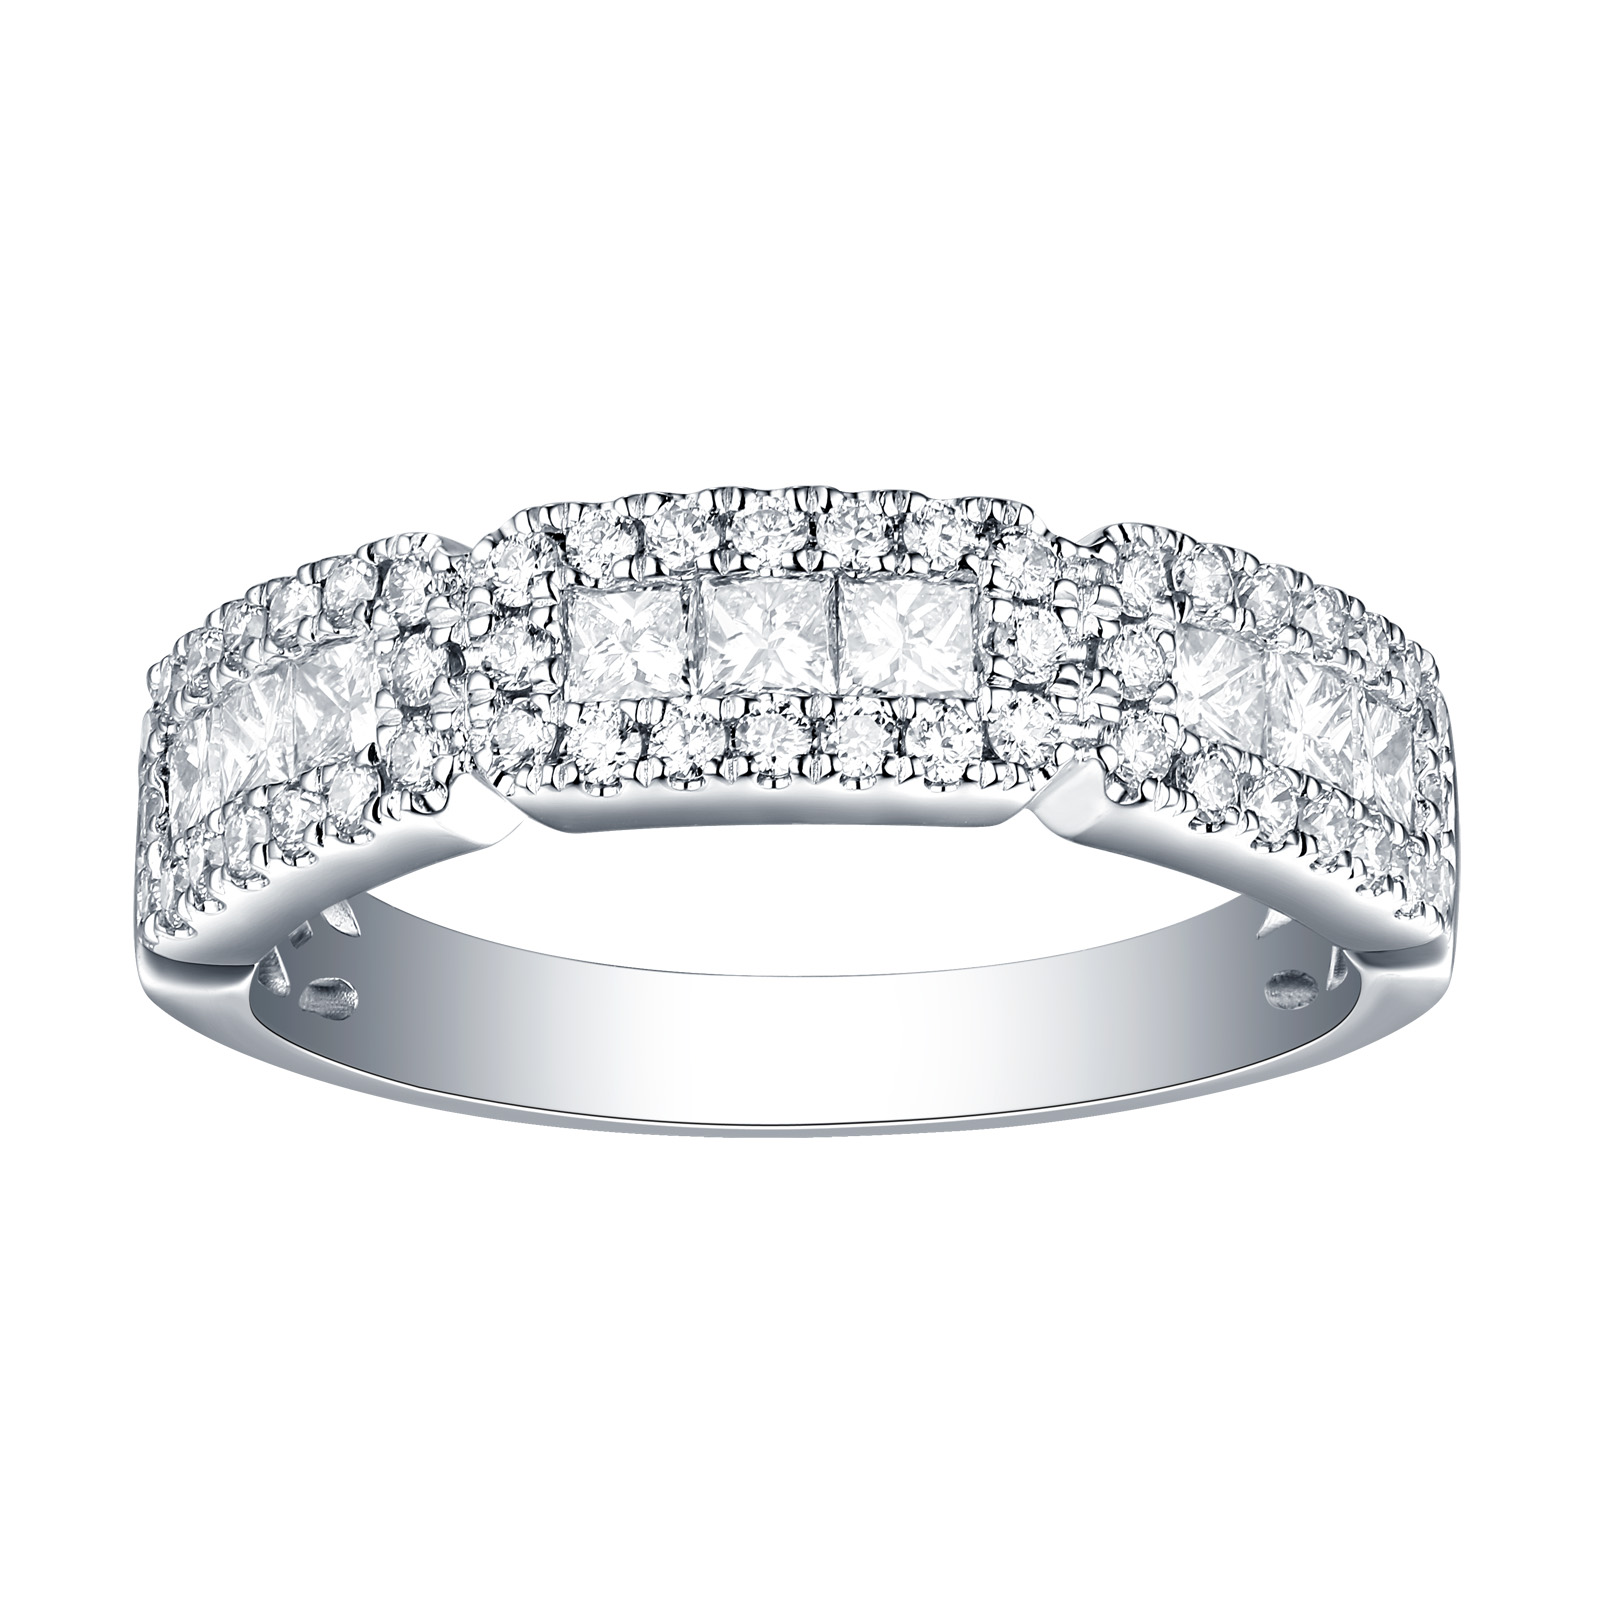 R26075WHT – 14K White Gold Diamond Ring, 0.86 TCW